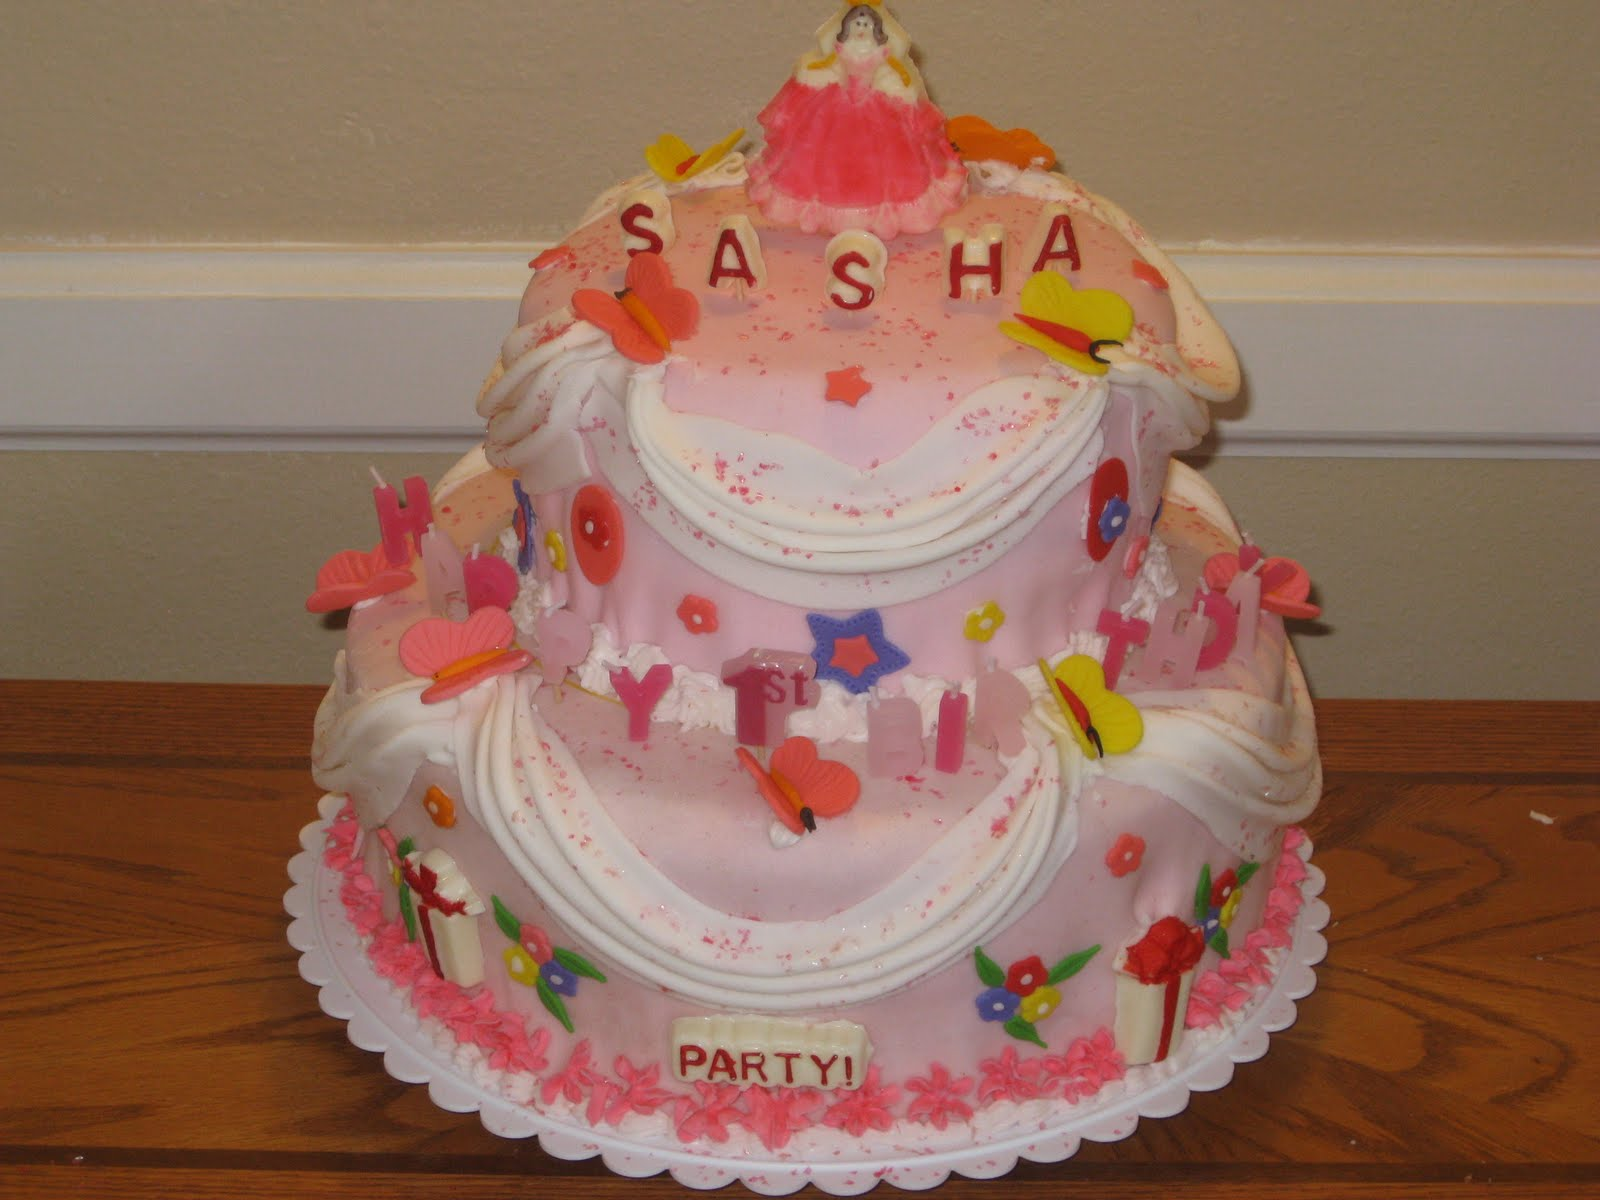 Garden designs and ideas pictures - Noreen Raja Zoom Cakes Gallery Raja Cake Ideas And Designs